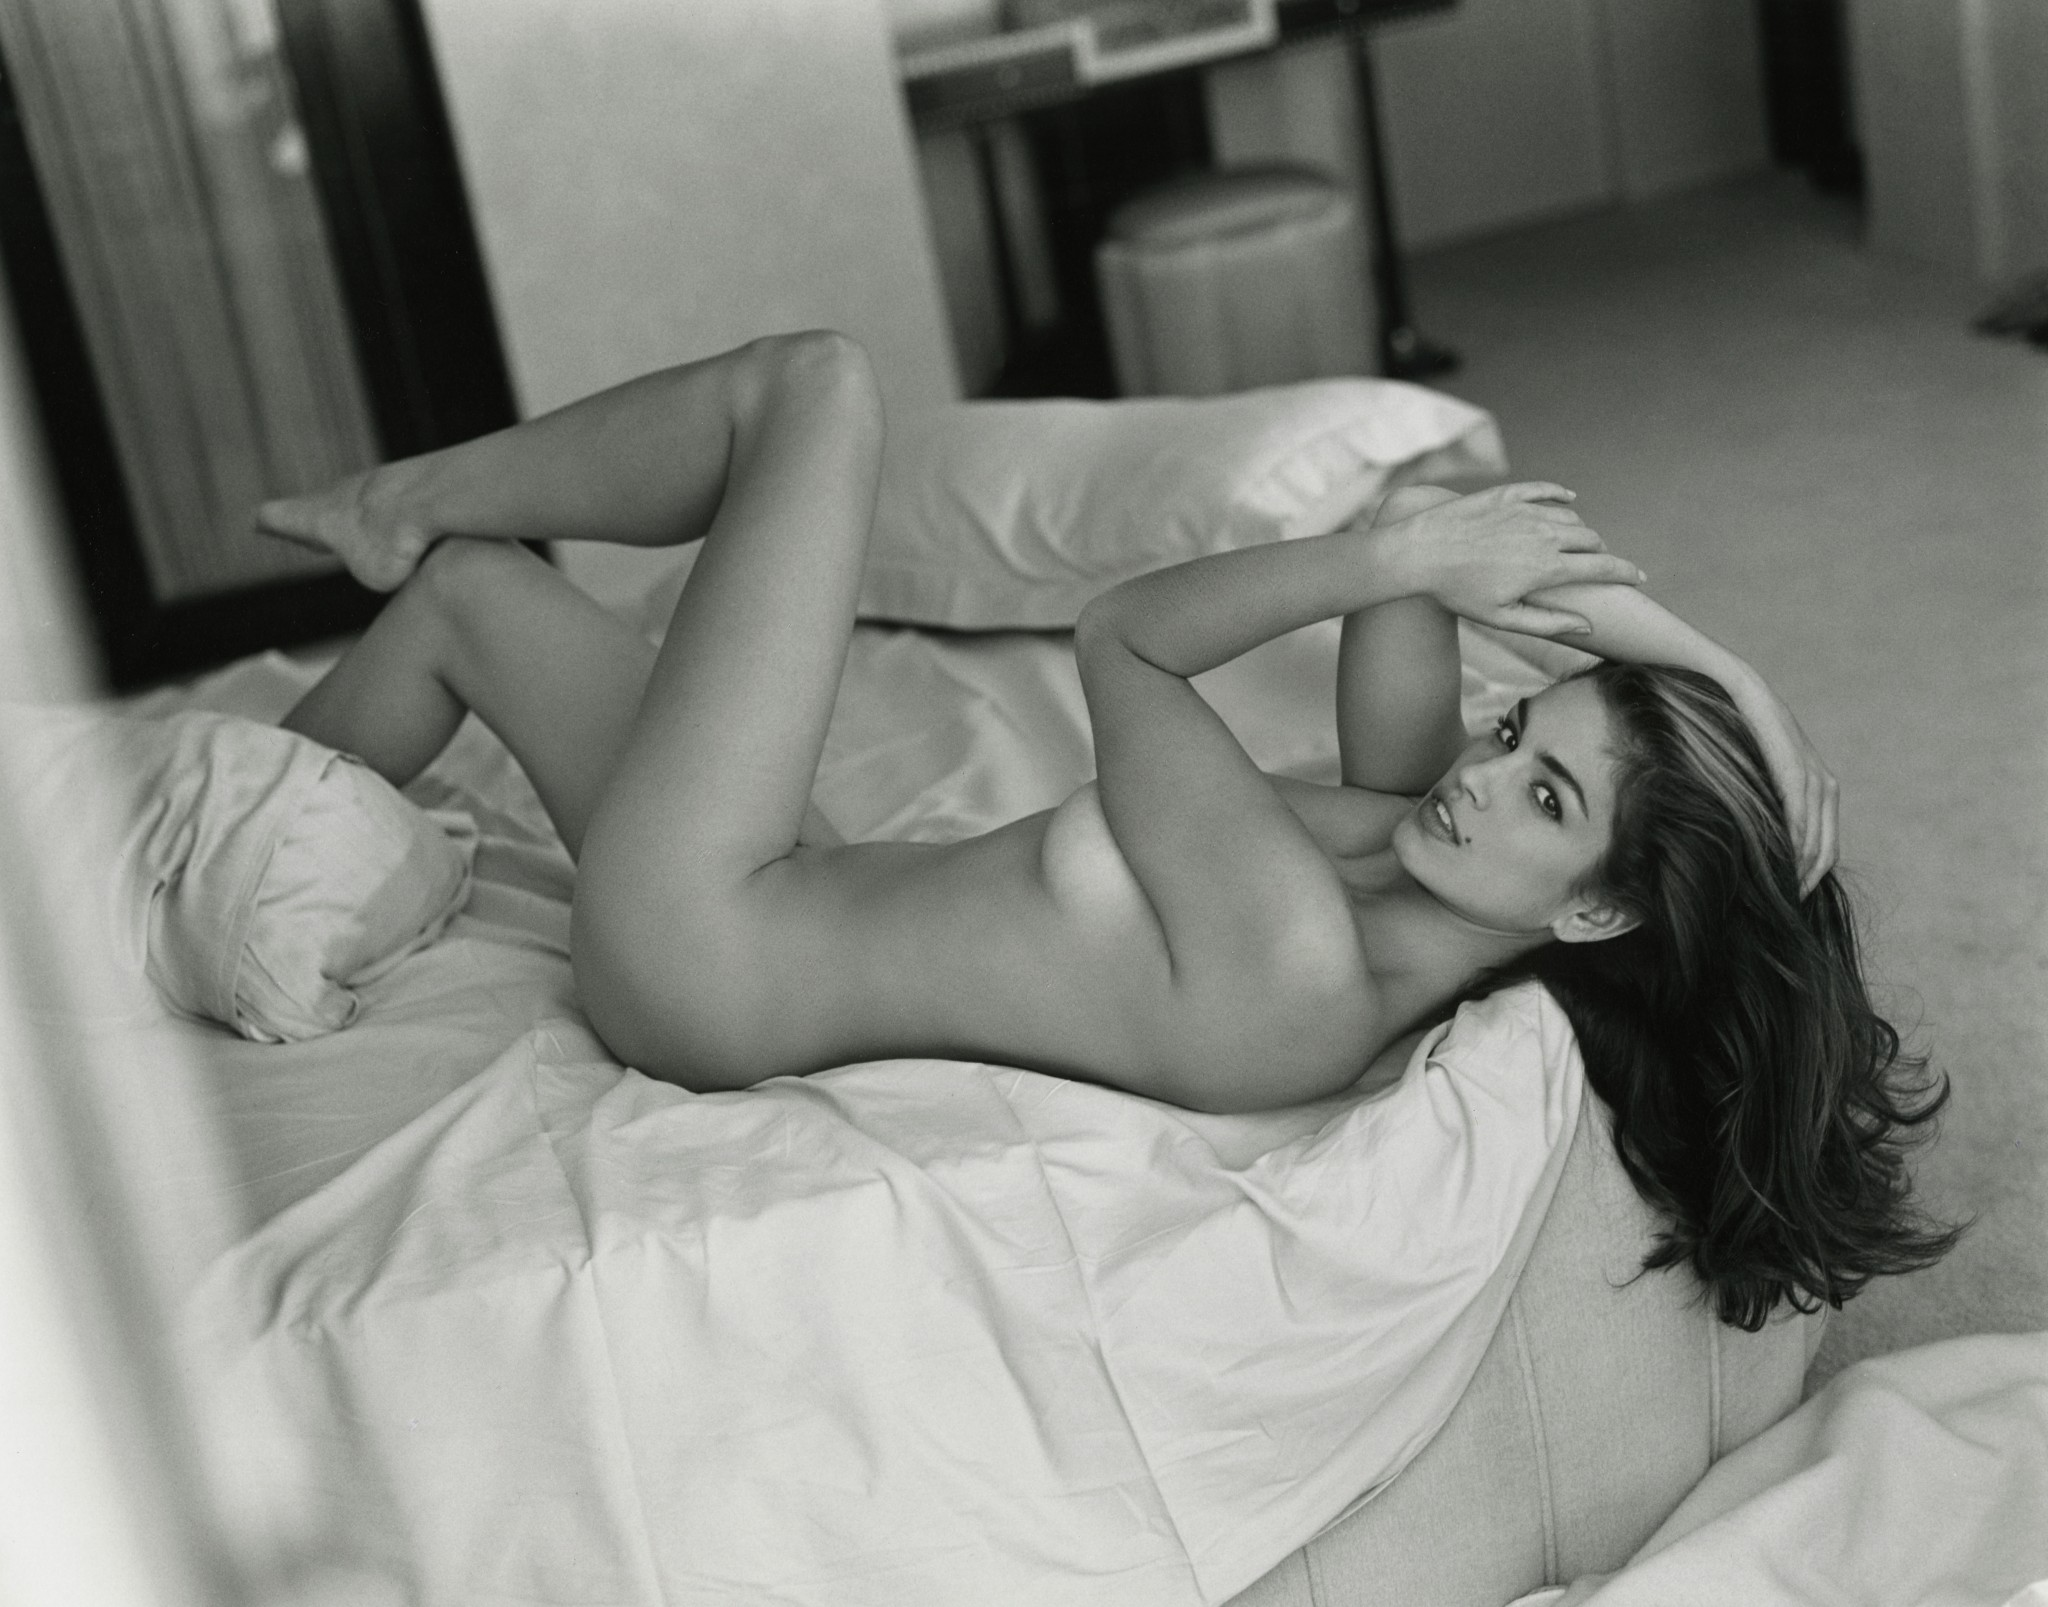 Cindy Crawford poses naked in bed for Sante D'Orazio